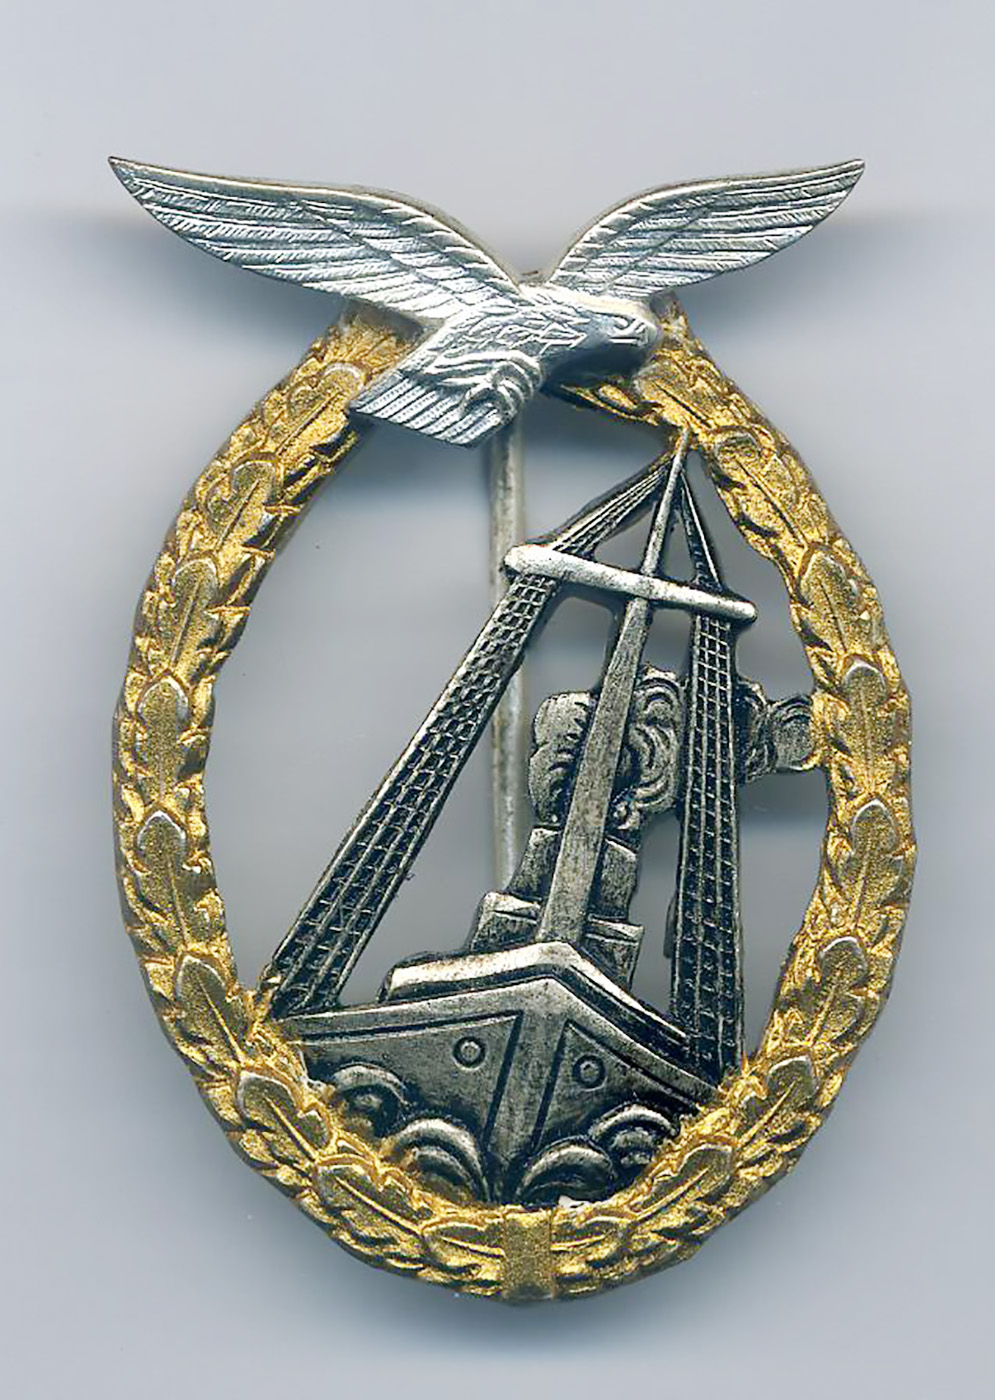 Luftwaffe Air Sea badge in the 1957 form